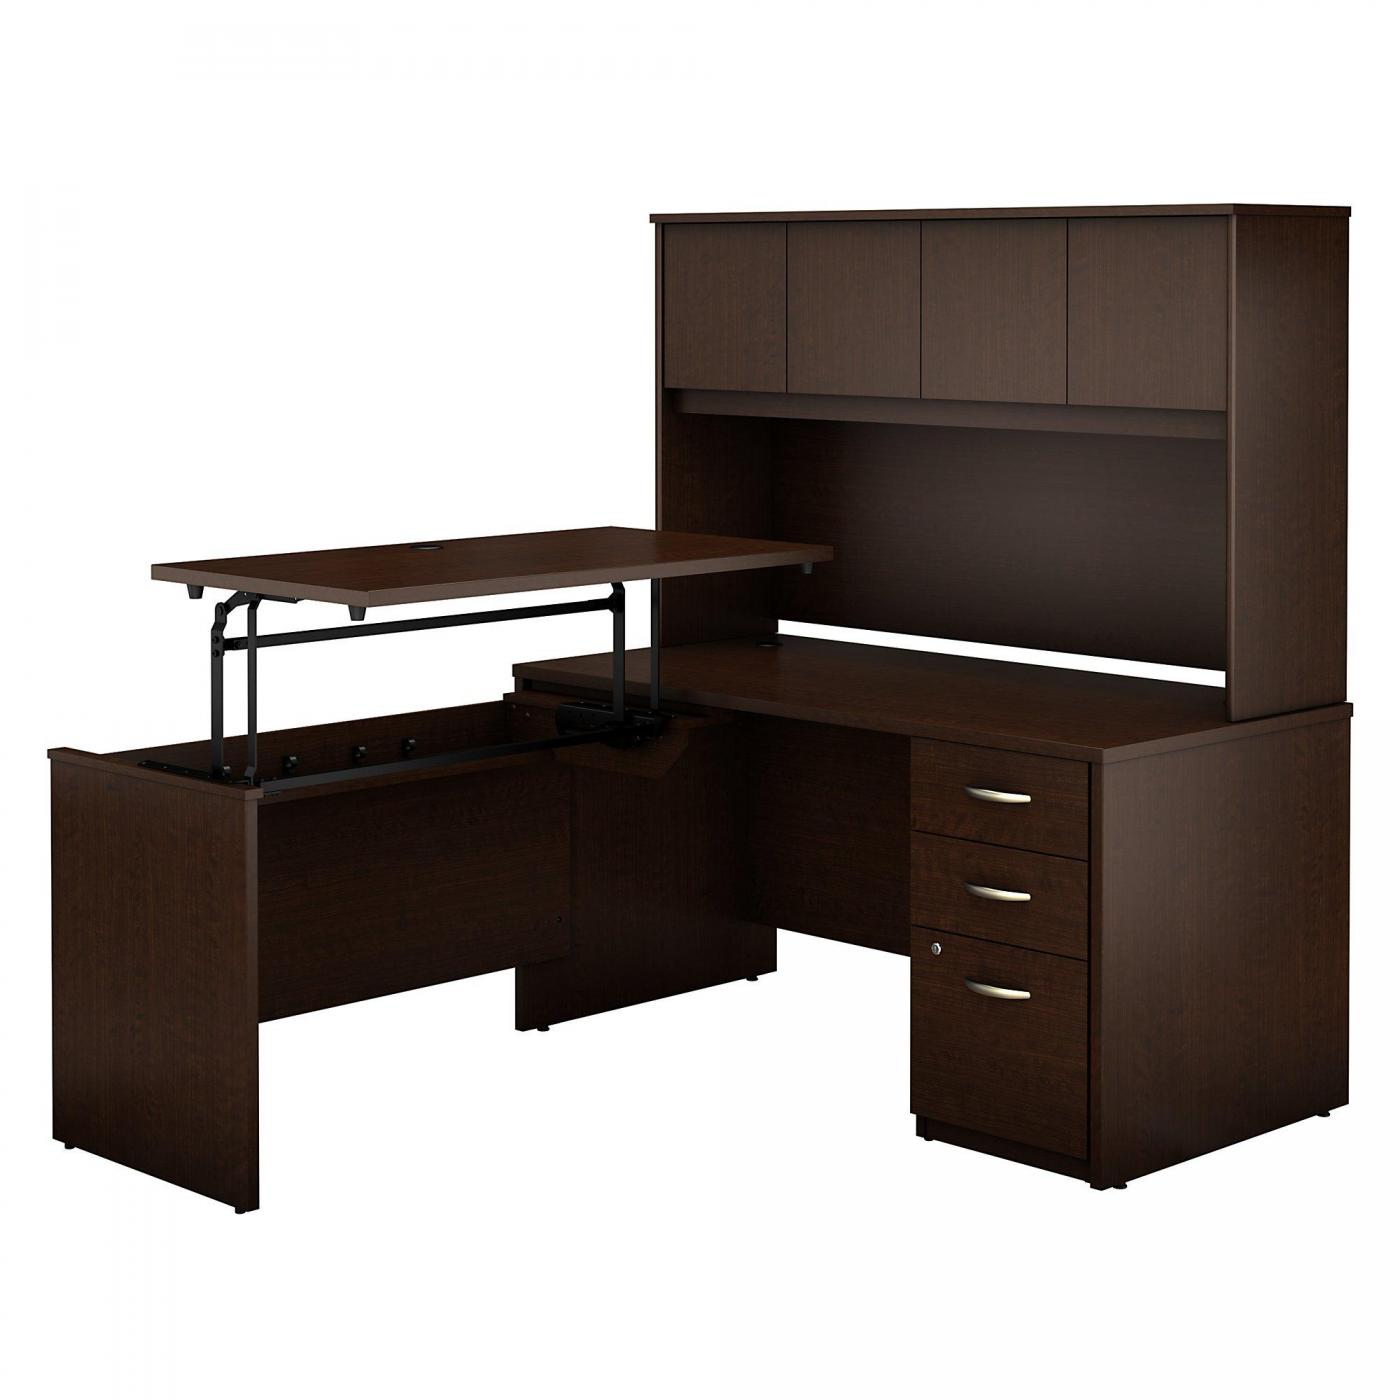 <font color=#c60><b>BUSH BUSINESS FURNITURE SERIES C ELITE 60W X 30D 3 POSITION SIT TO STAND L SHAPED DESK WITH HUTCH AND 3 DRAWER FILE CABINET. FREE SHIPPING. VIDEO:</font></b></font></b>